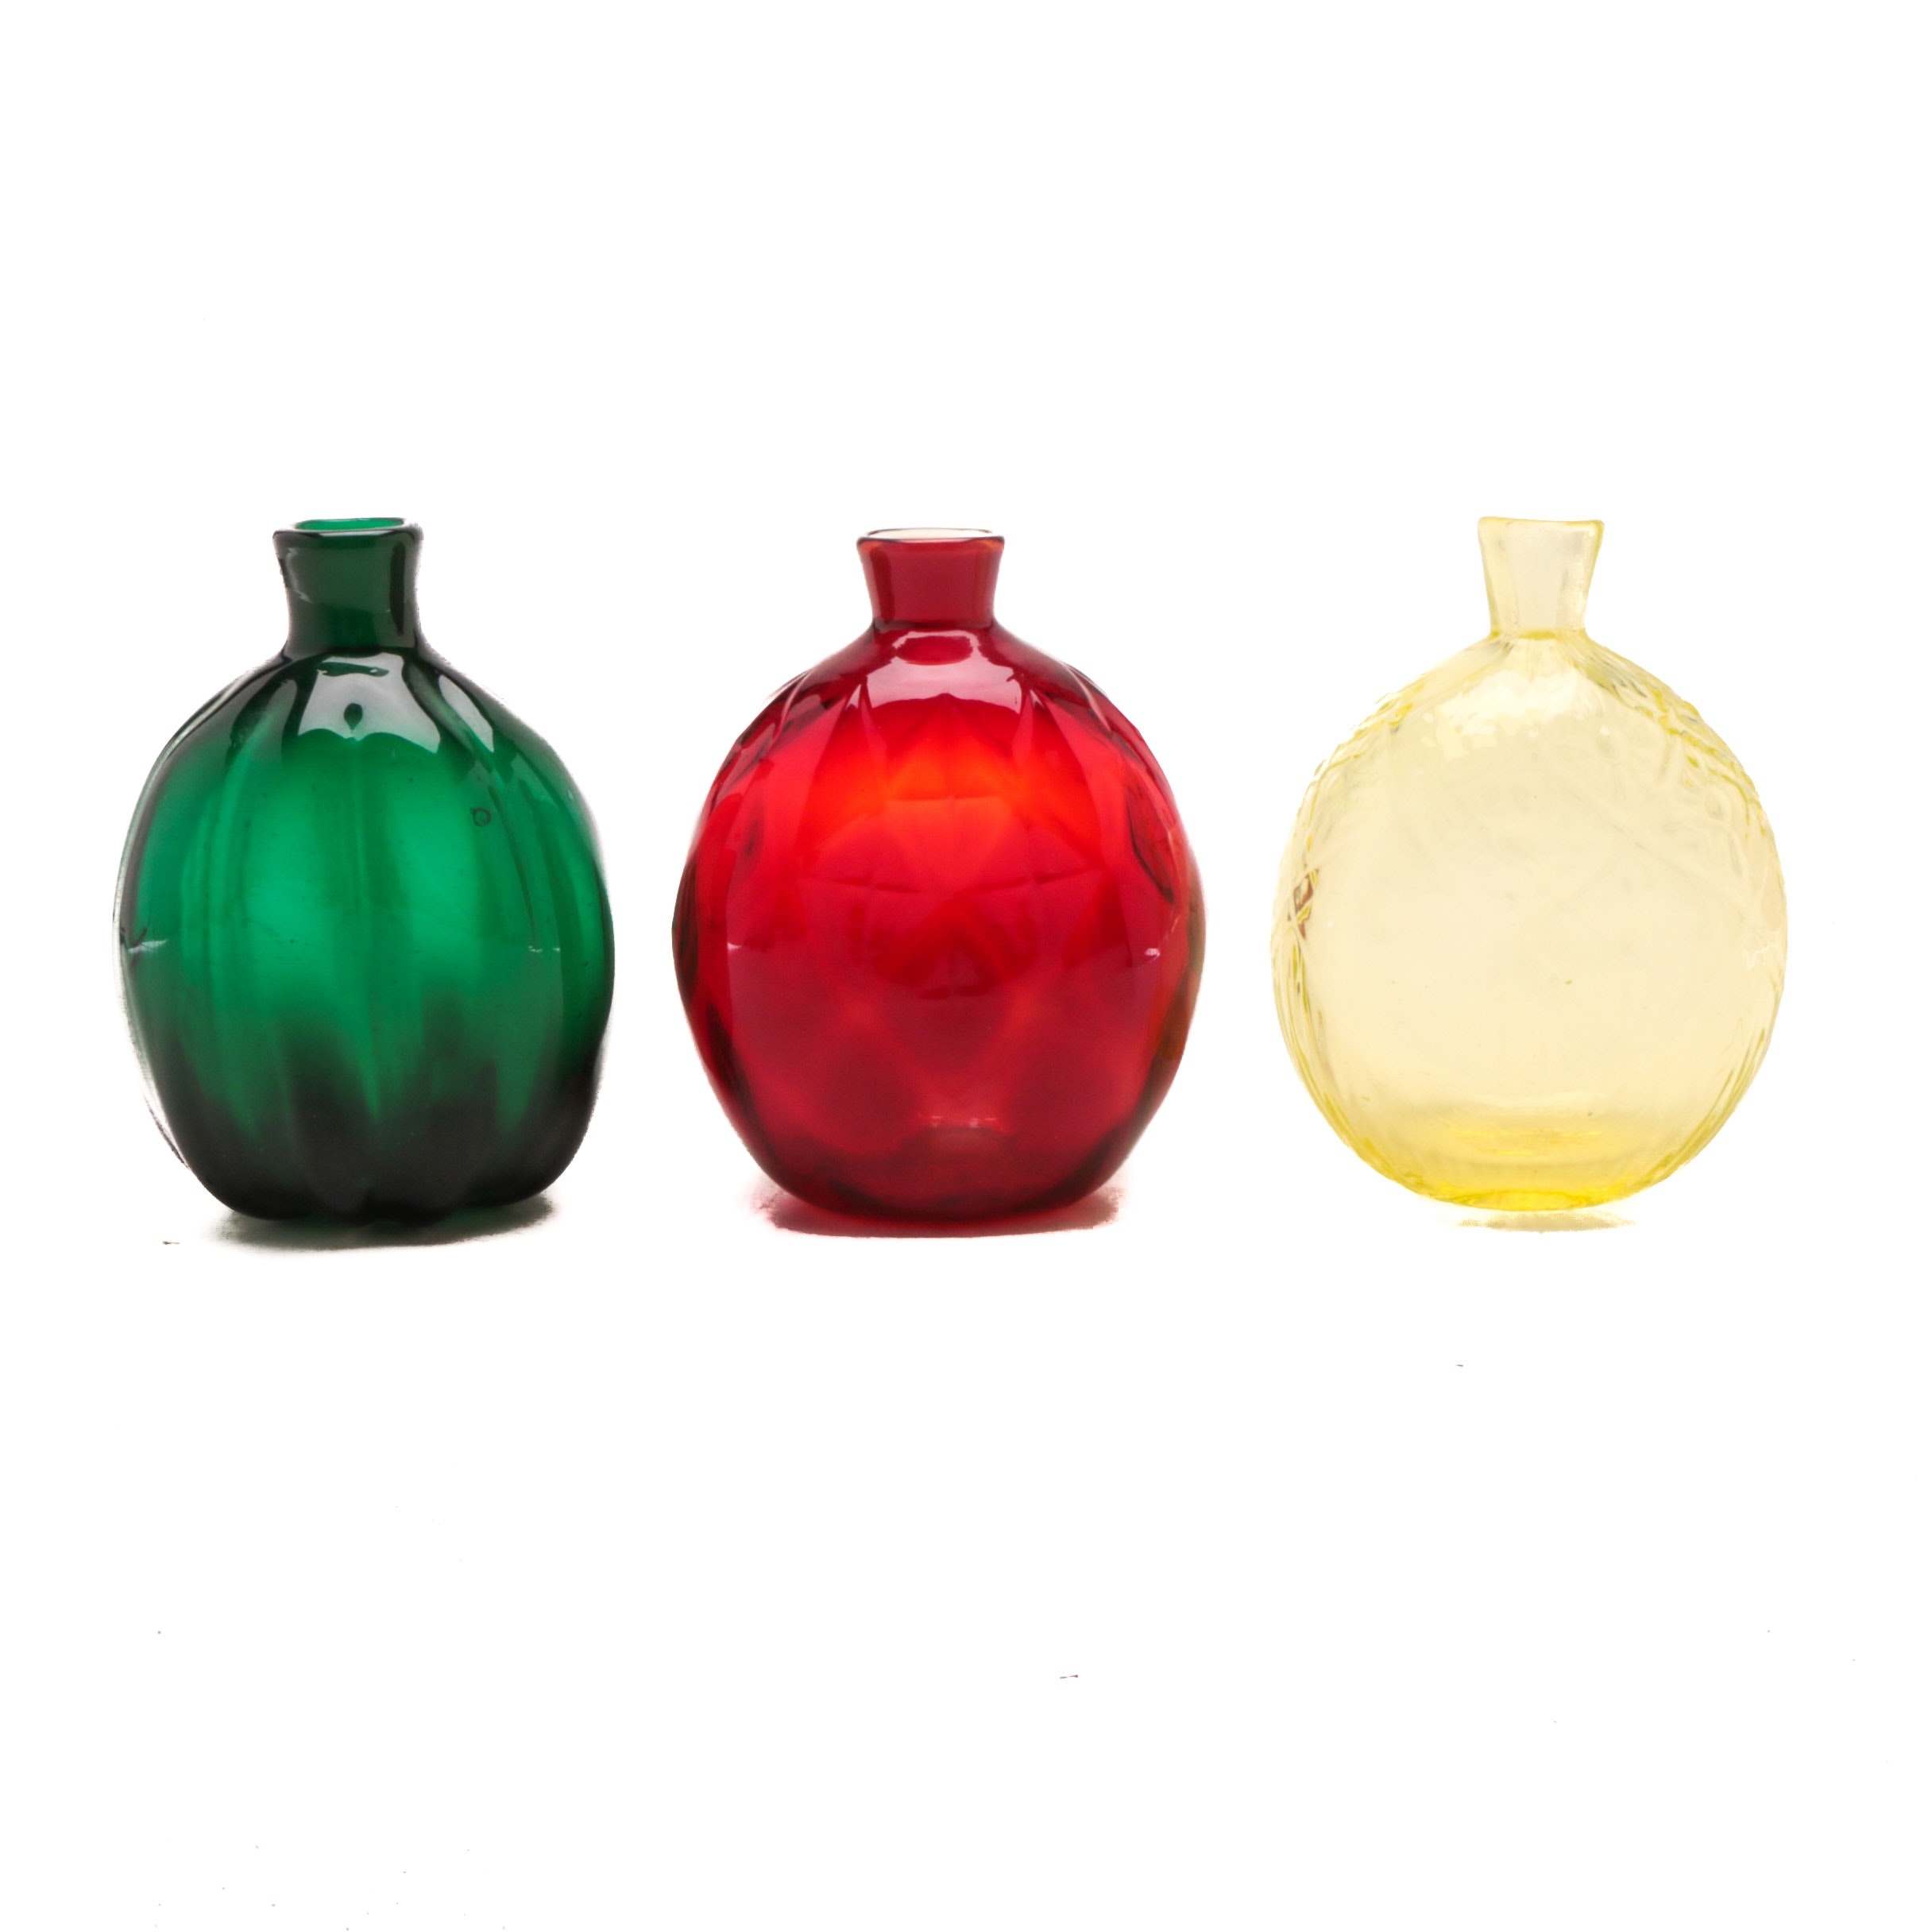 Collection of Hand Blown Glass Bottles by the Museum of Modern Art